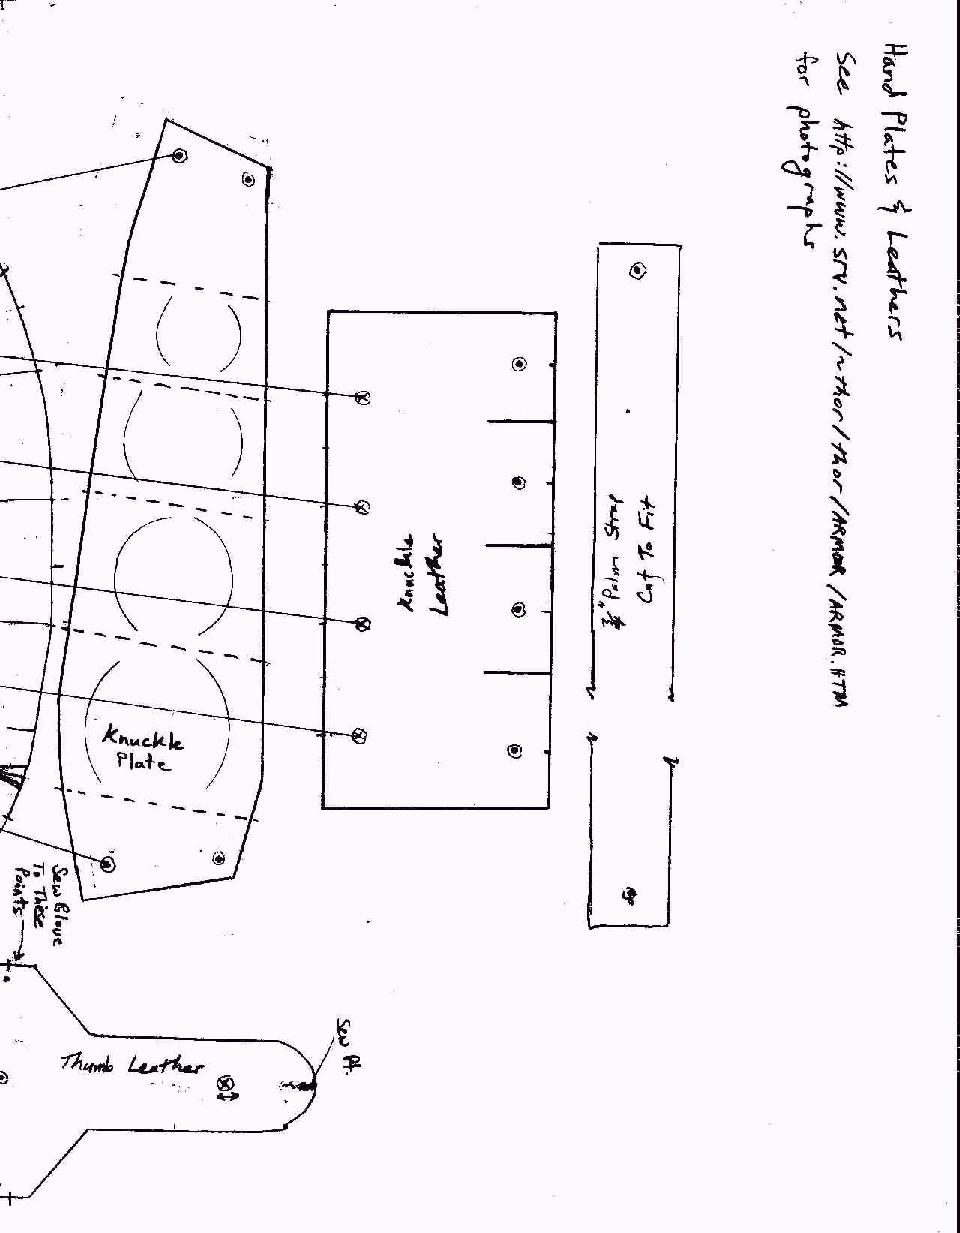 Gauntlet Template And Instructions.pdf